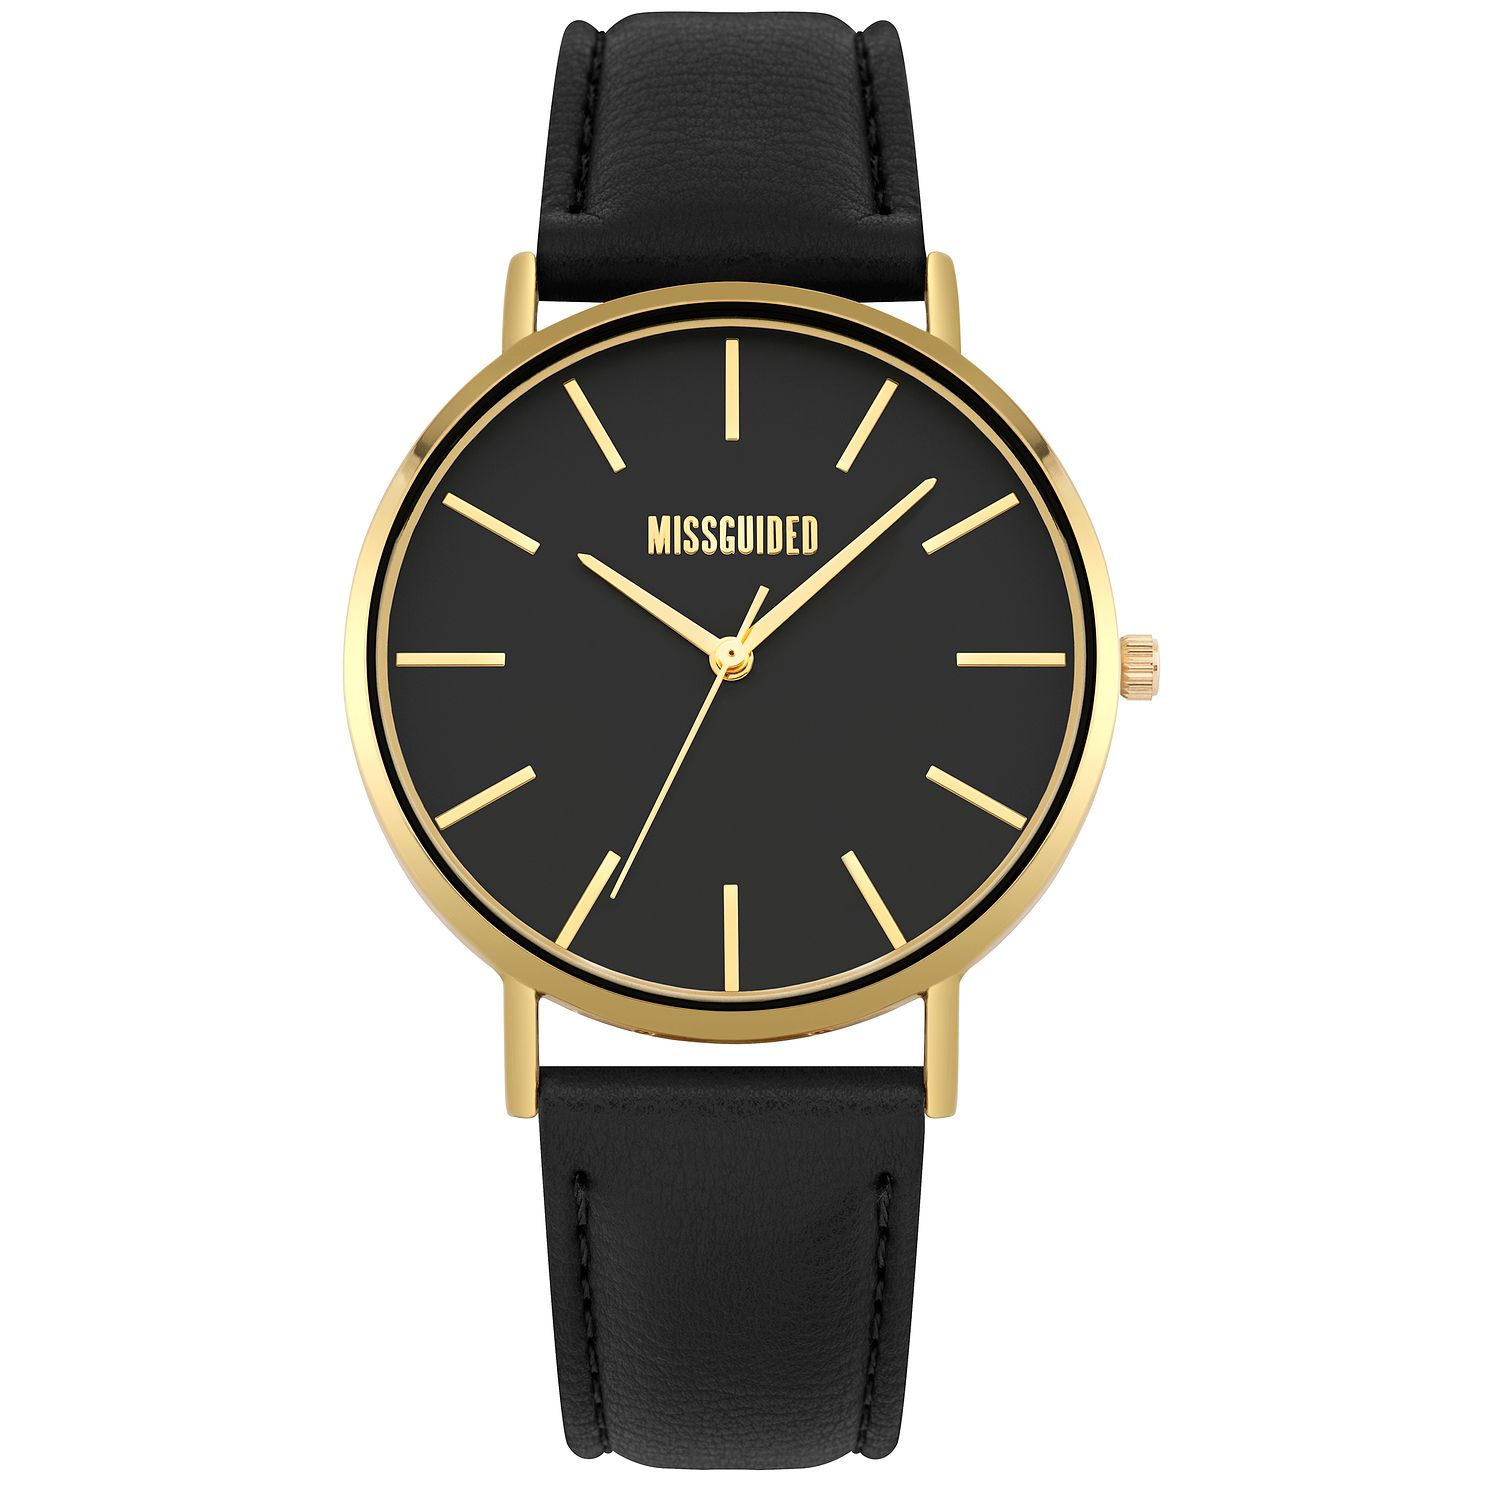 Missguided Ladies' Gold Tone Black PU Strap Watch - Product number 1098306